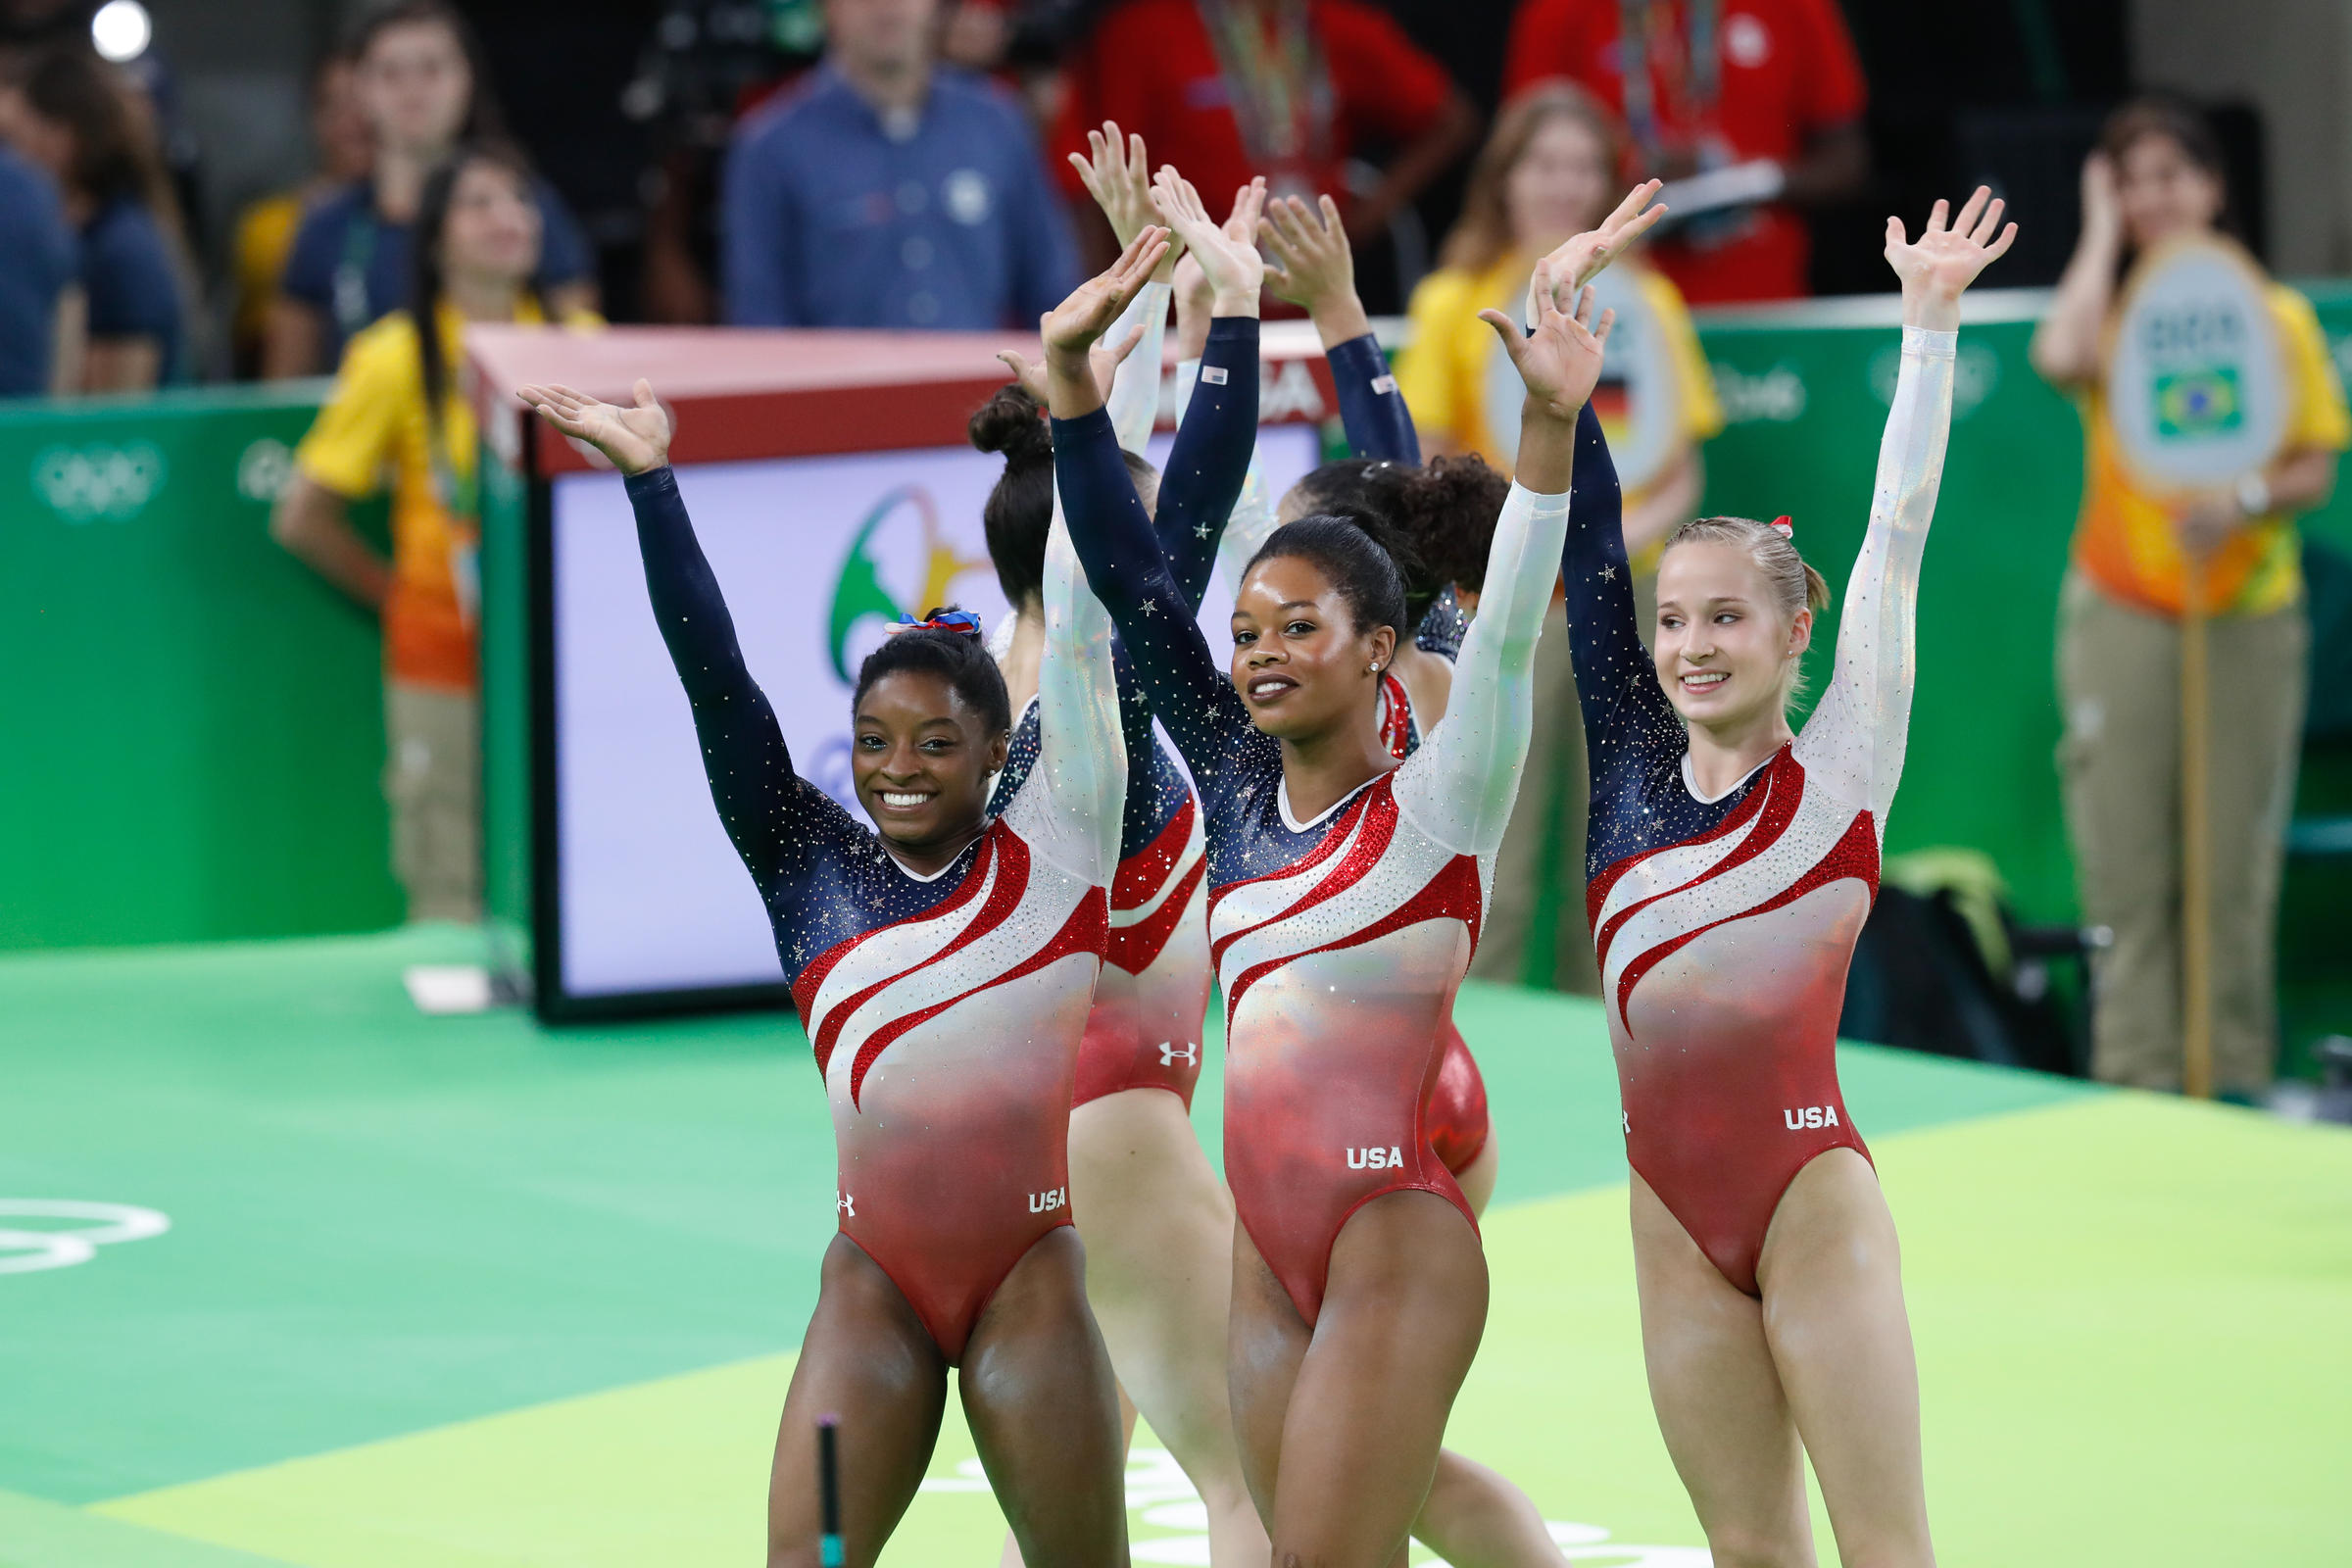 Entire USA Gymnastics board asked to resign or face decertification